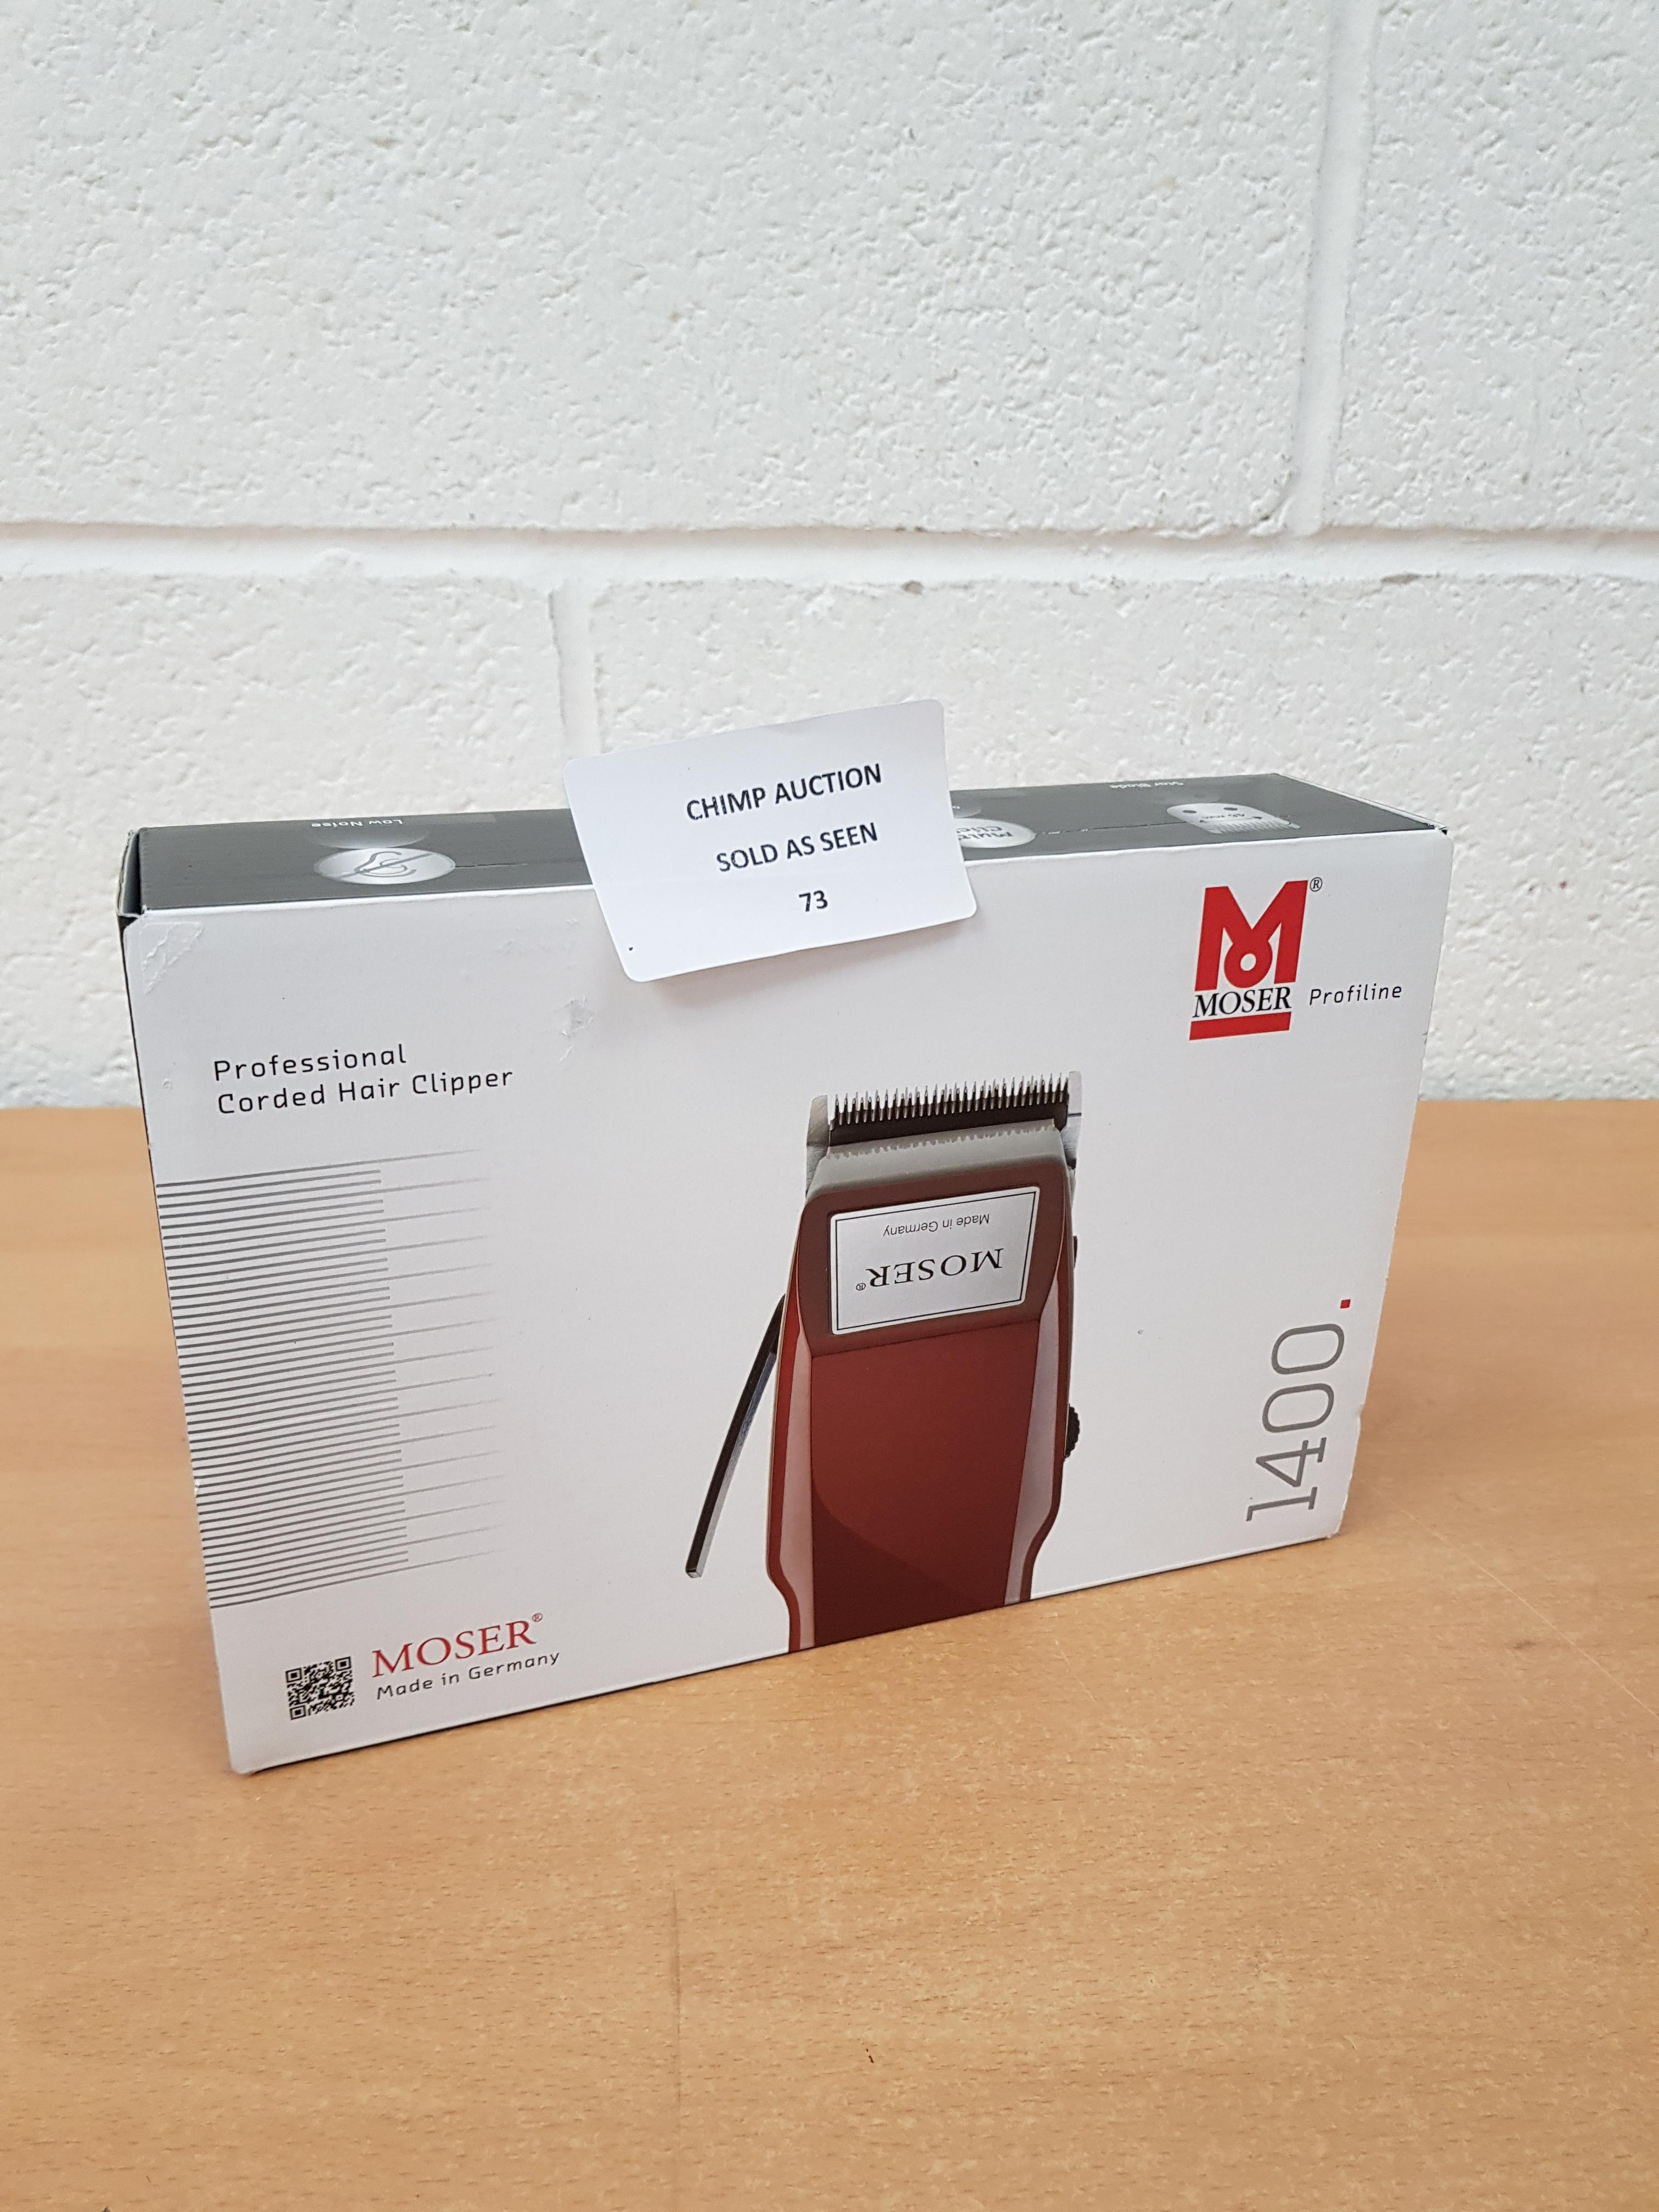 Lot 73 - Moser 1400/SET Edition Hair trimmer RRP £79.99